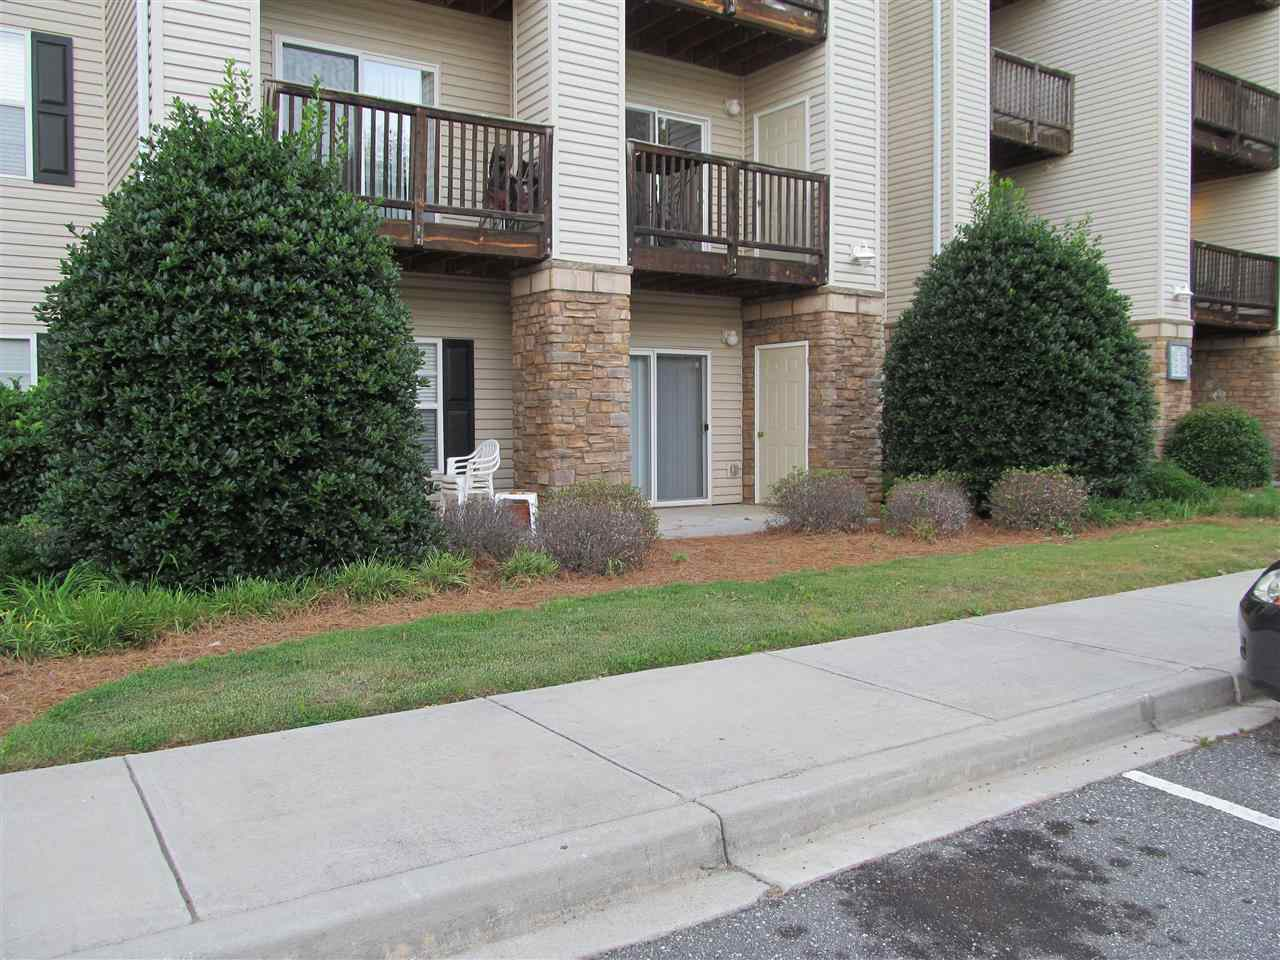 Rental Homes for Rent, ListingId:30621137, location: 702 Lookover Dr Anderson 29621